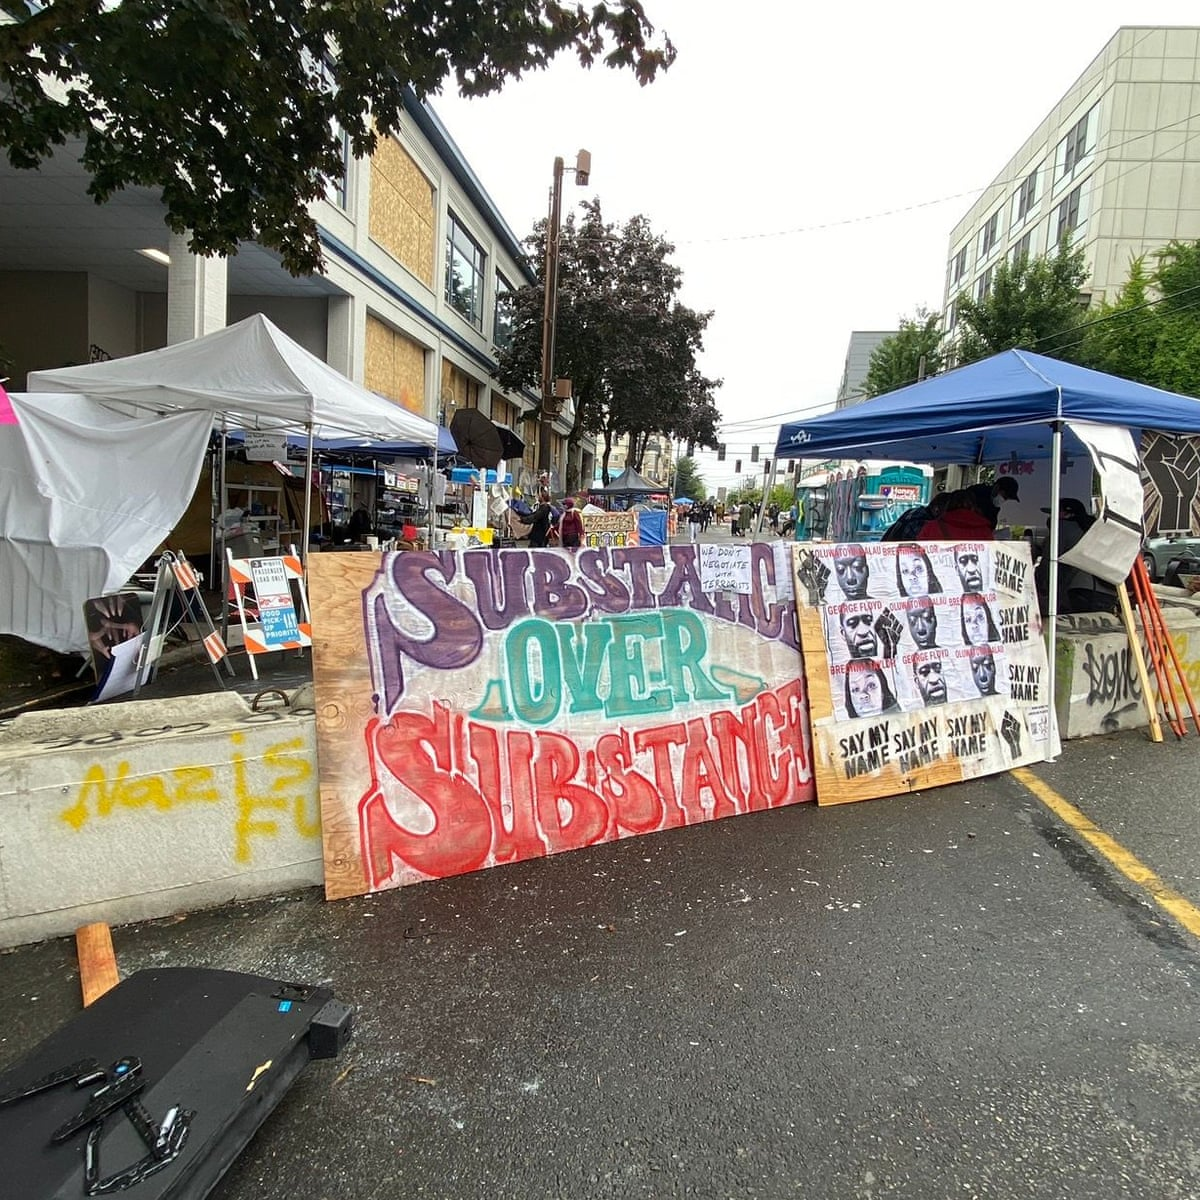 Seattle One Teen Killed And Another Injured In Shooting In Police Free Zone Seattle The Guardian